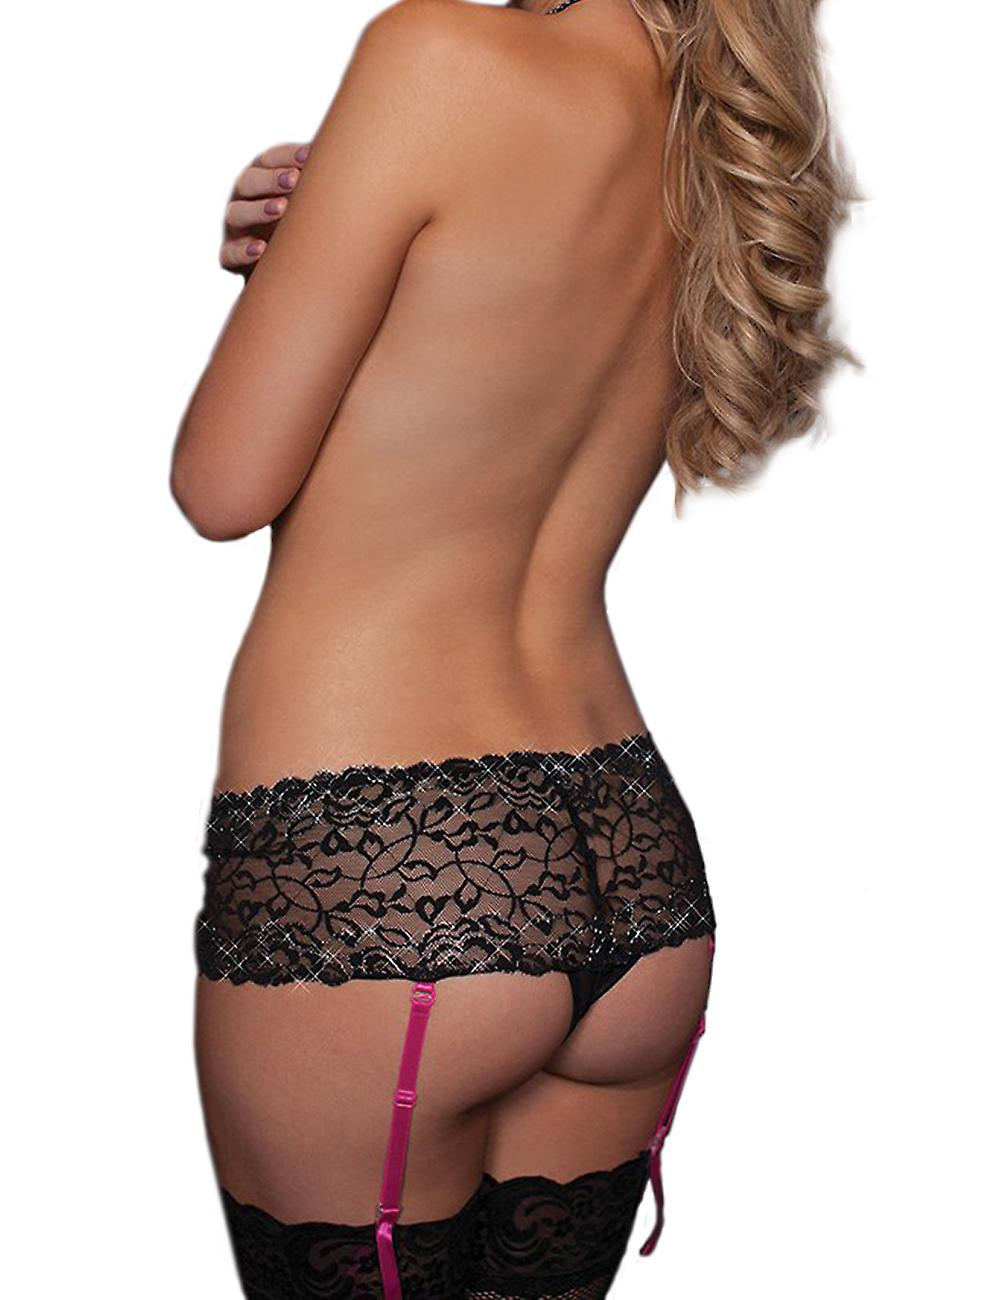 Waooh69 - Shorty with lace and garter Guin